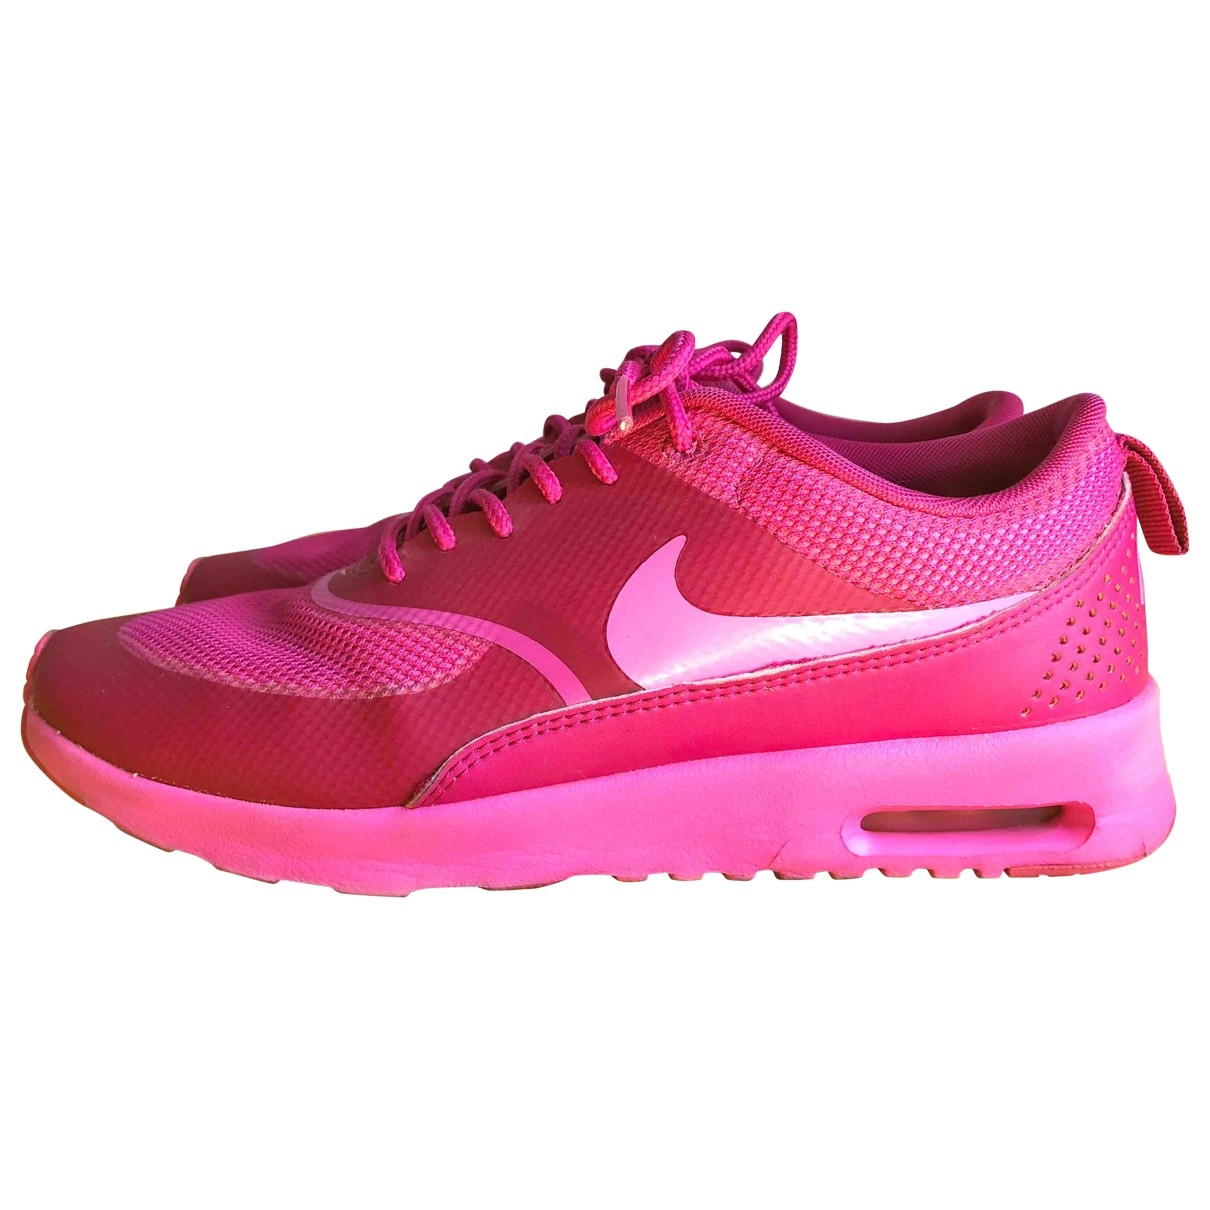 Nike Air Max  Pink Trainers for Women 5.5 UK